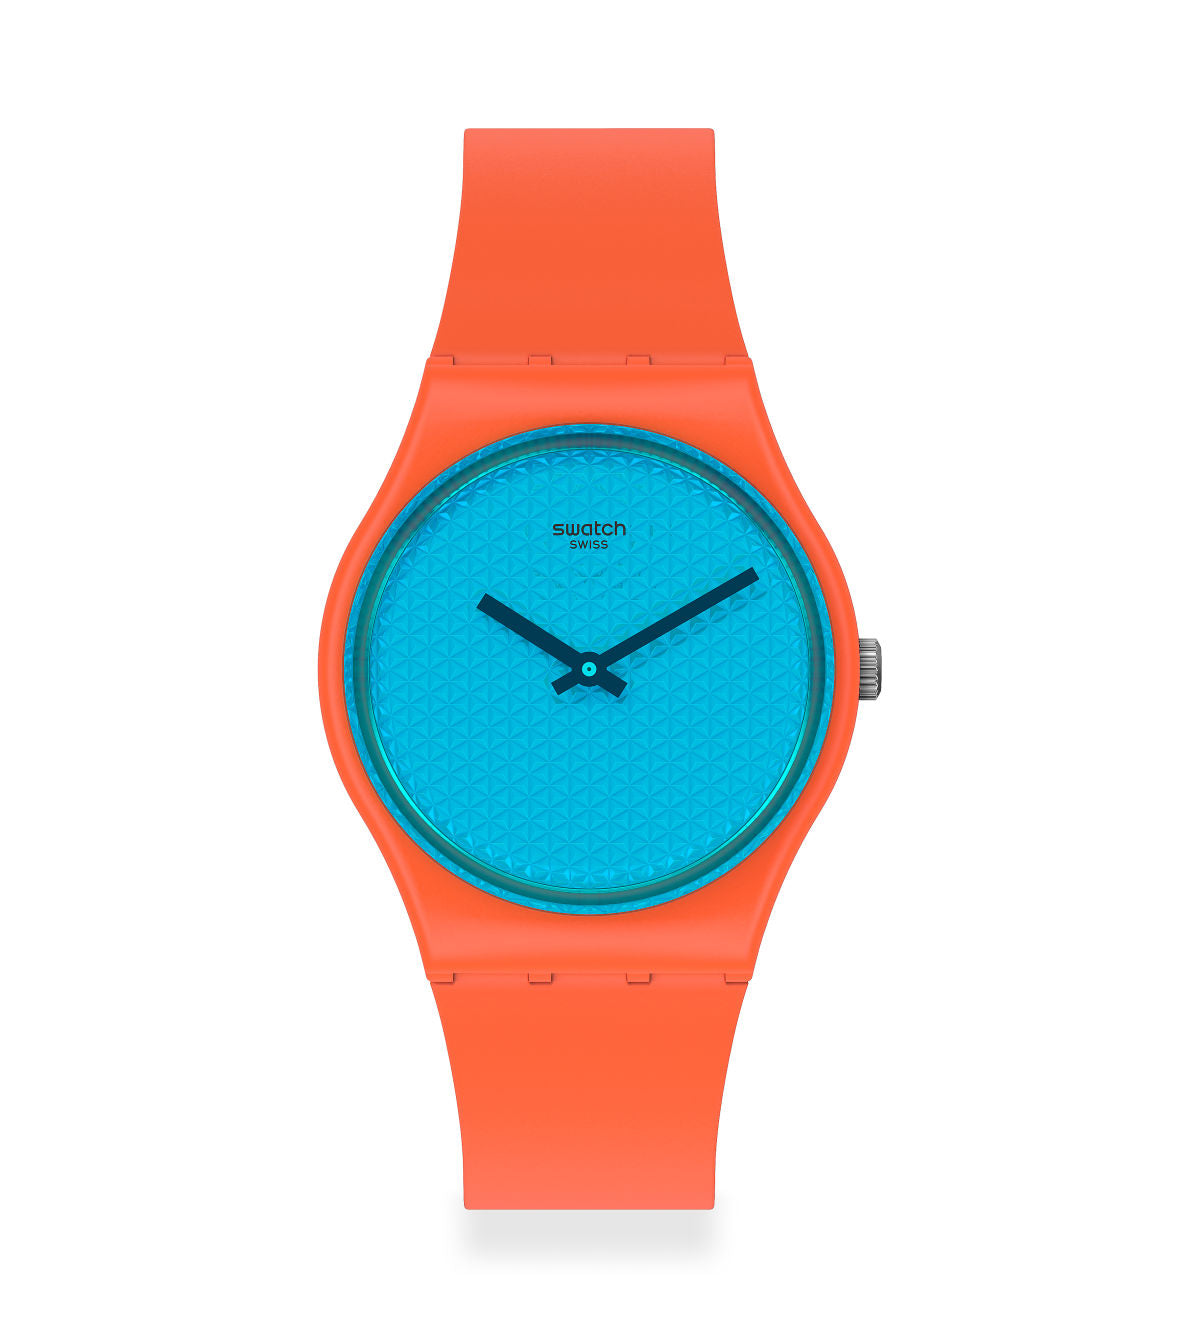 Swatch Watch 34mm - Urban Blue